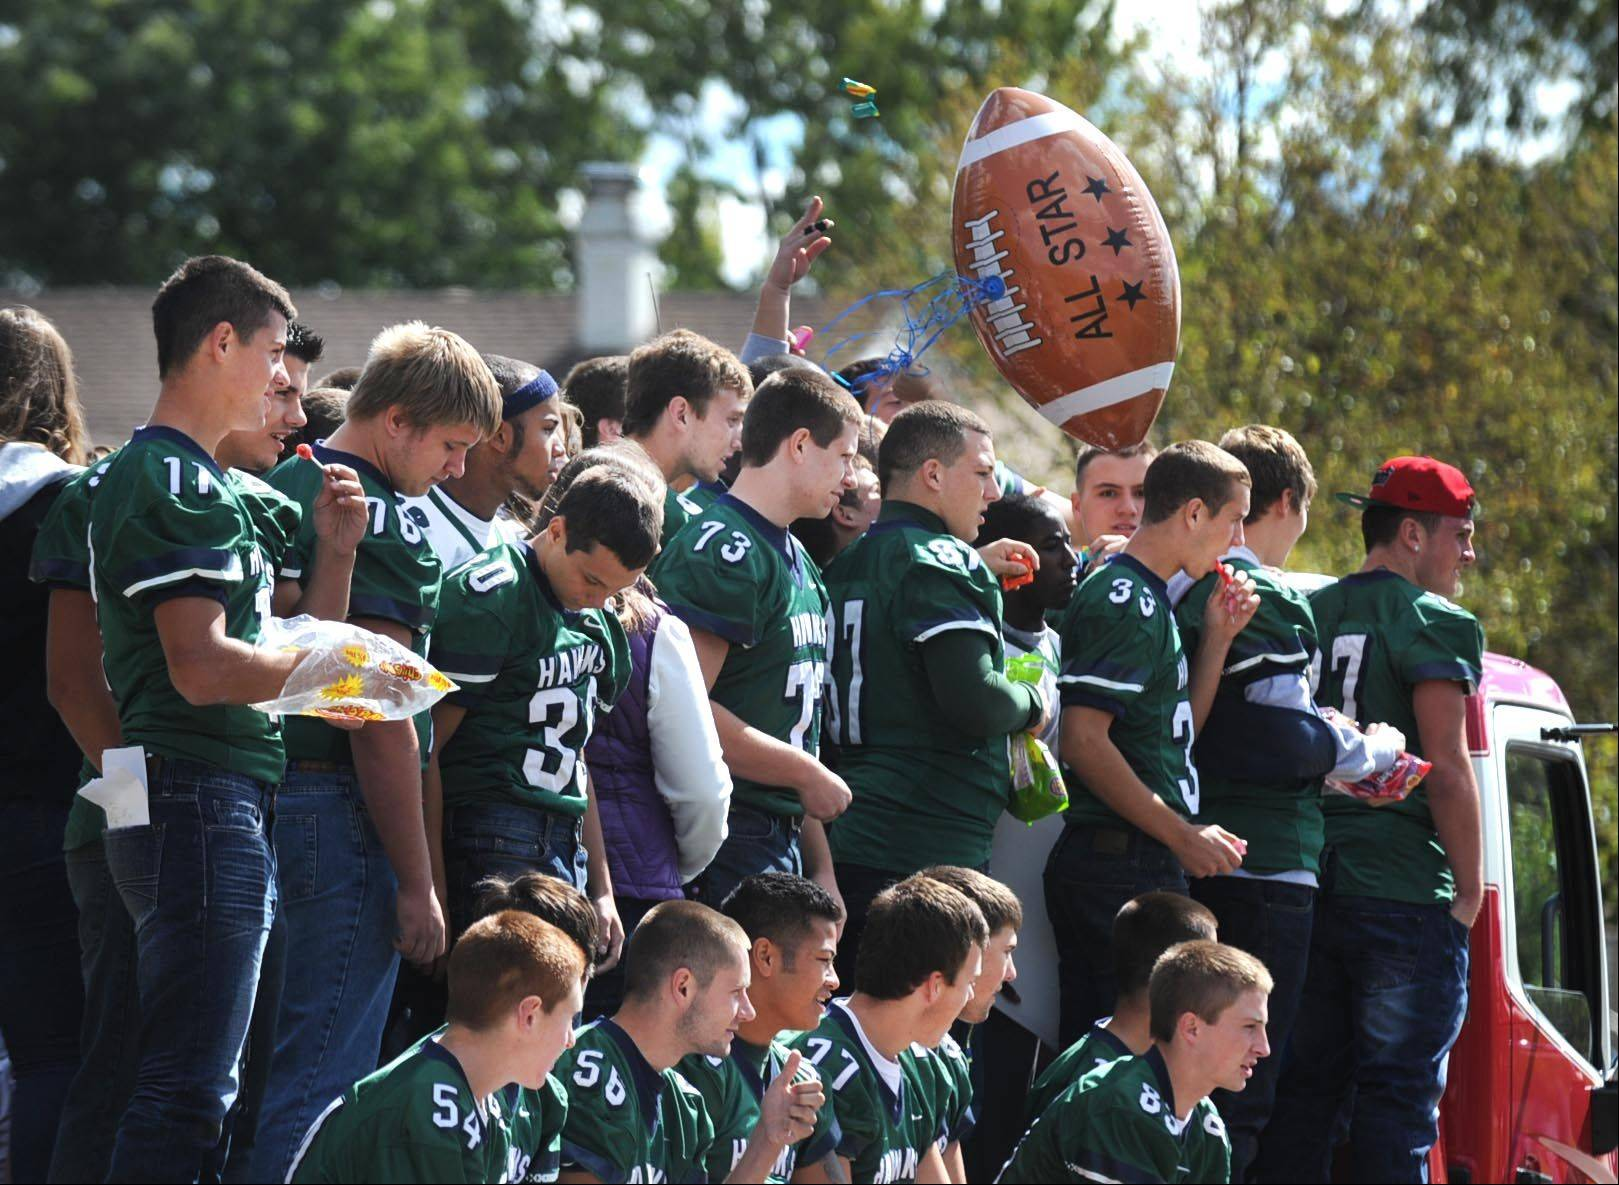 The Bartlett High School football team bounces a balloon around on their float during their Homecoming parade.